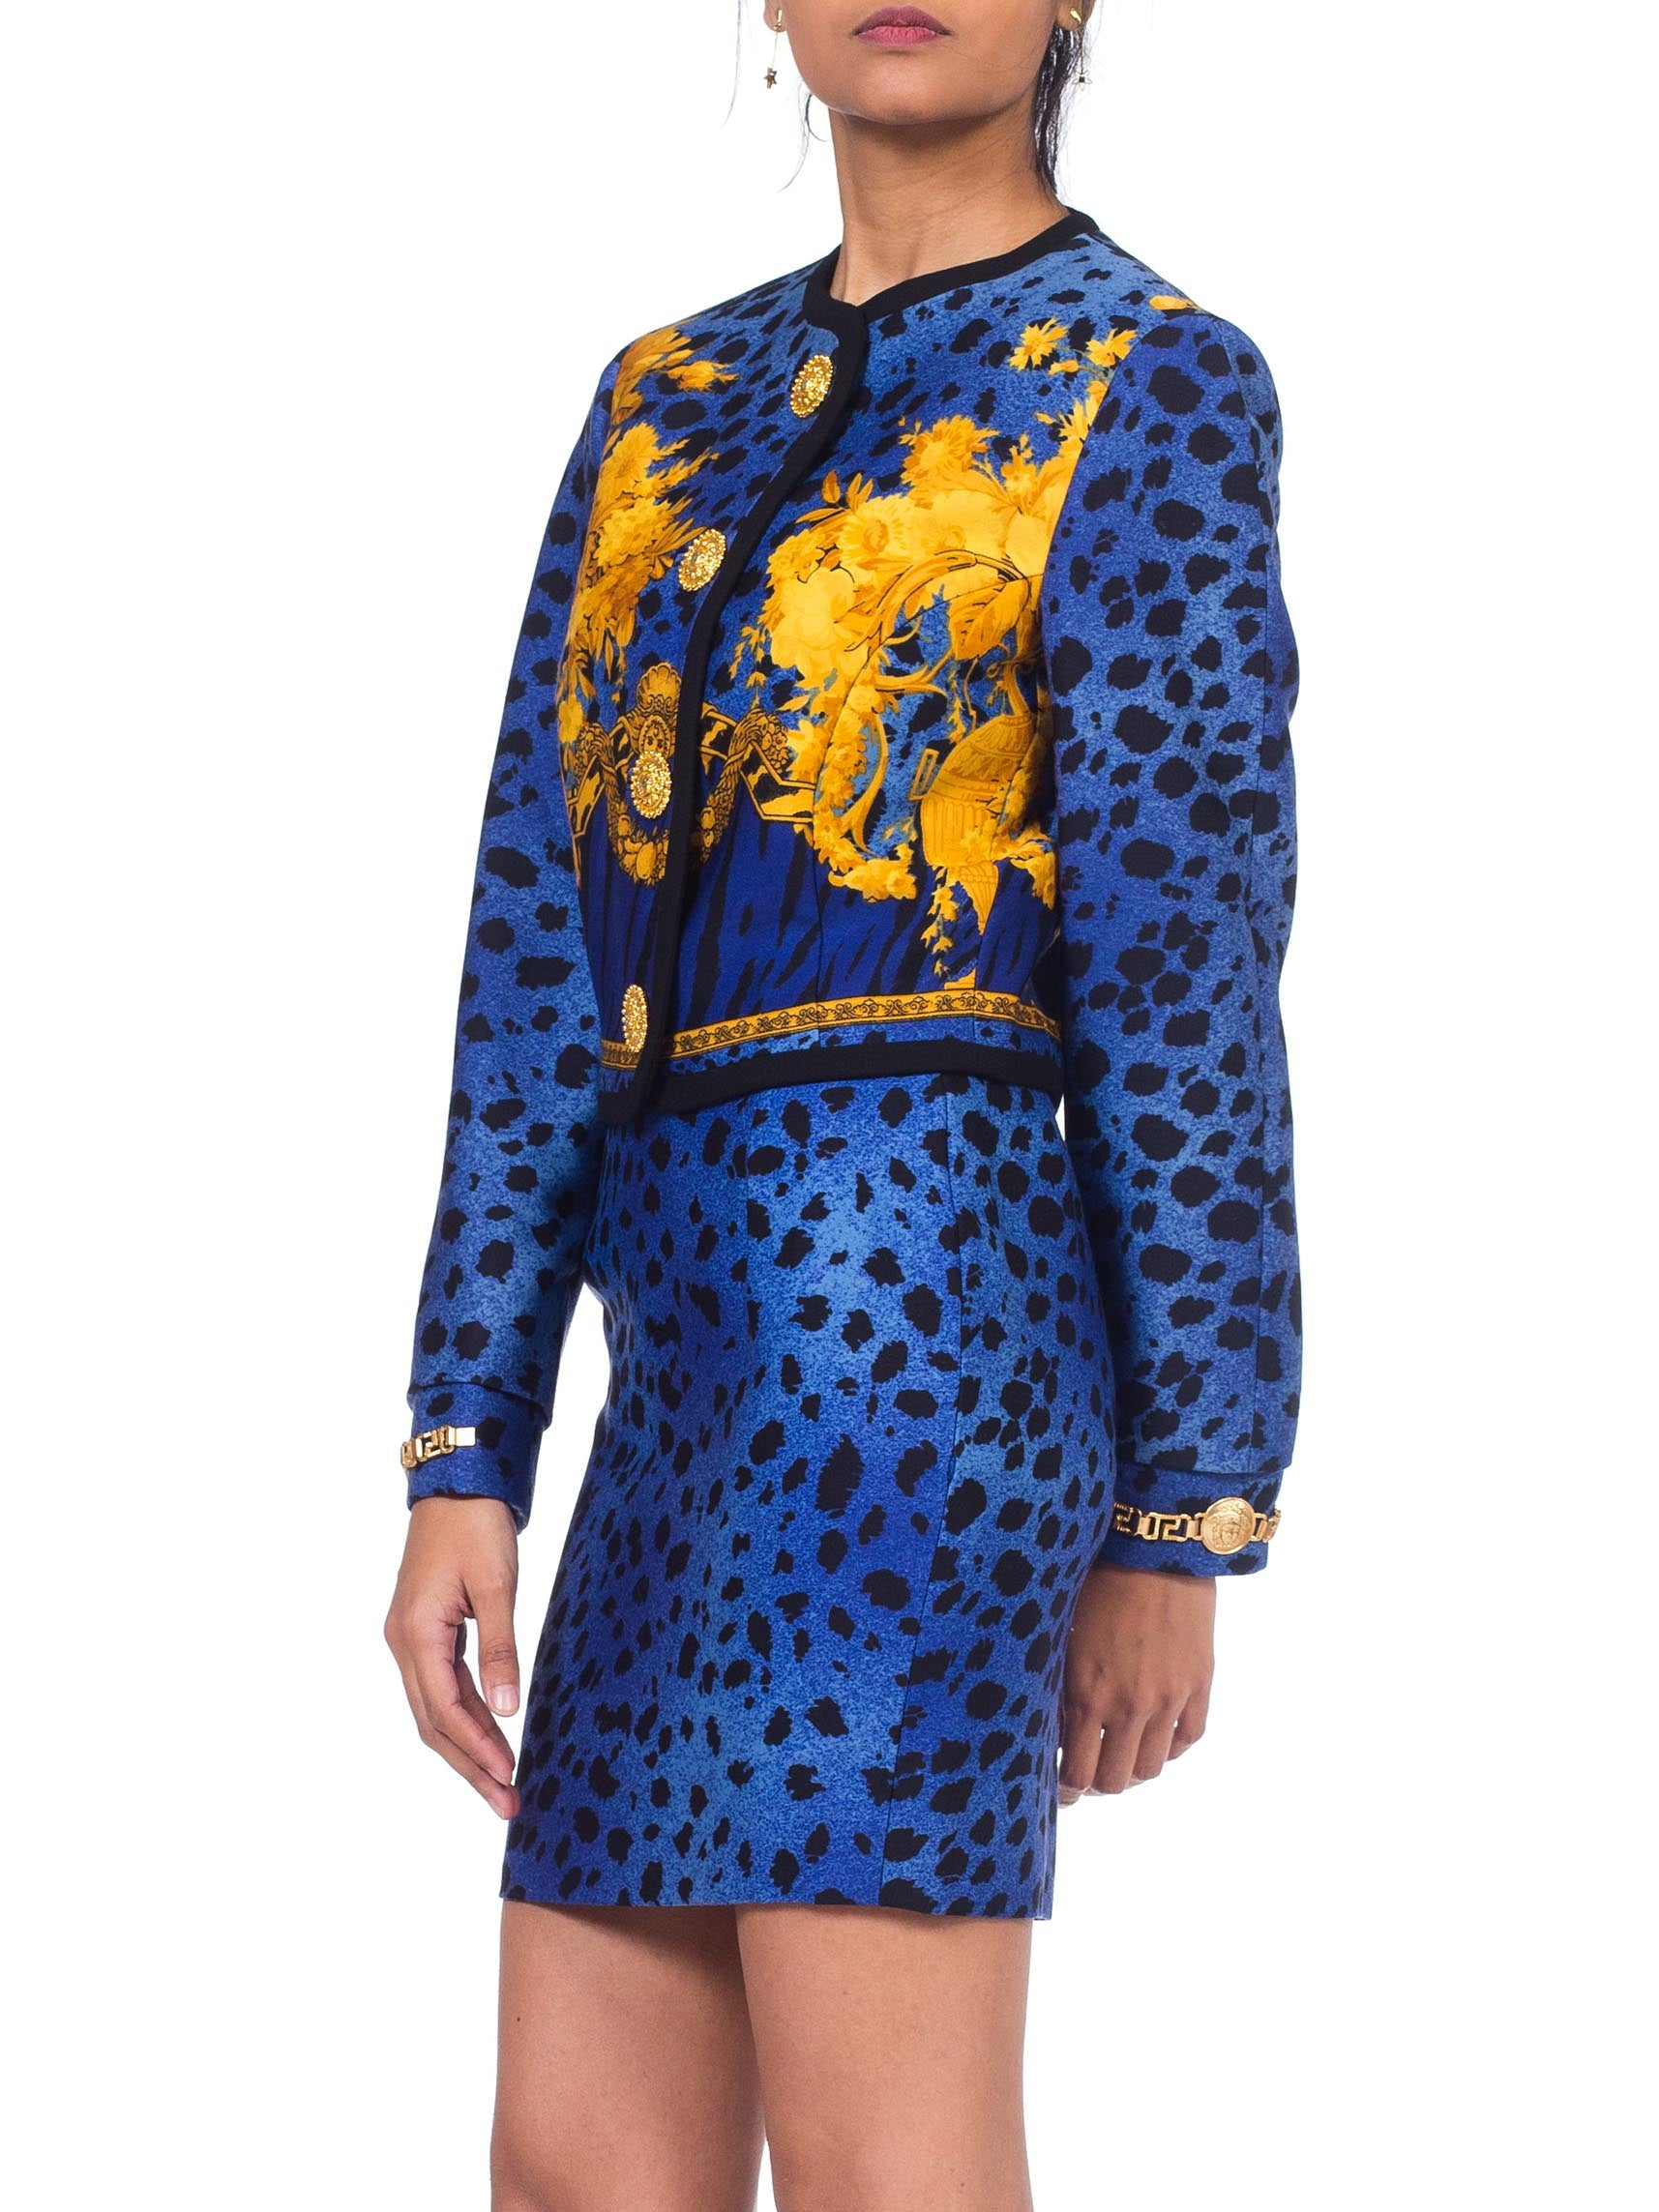 1990S GIANNI VERSACE Blue Baroque Leopard Print  Skirt Suit With Gold Chain Hardware